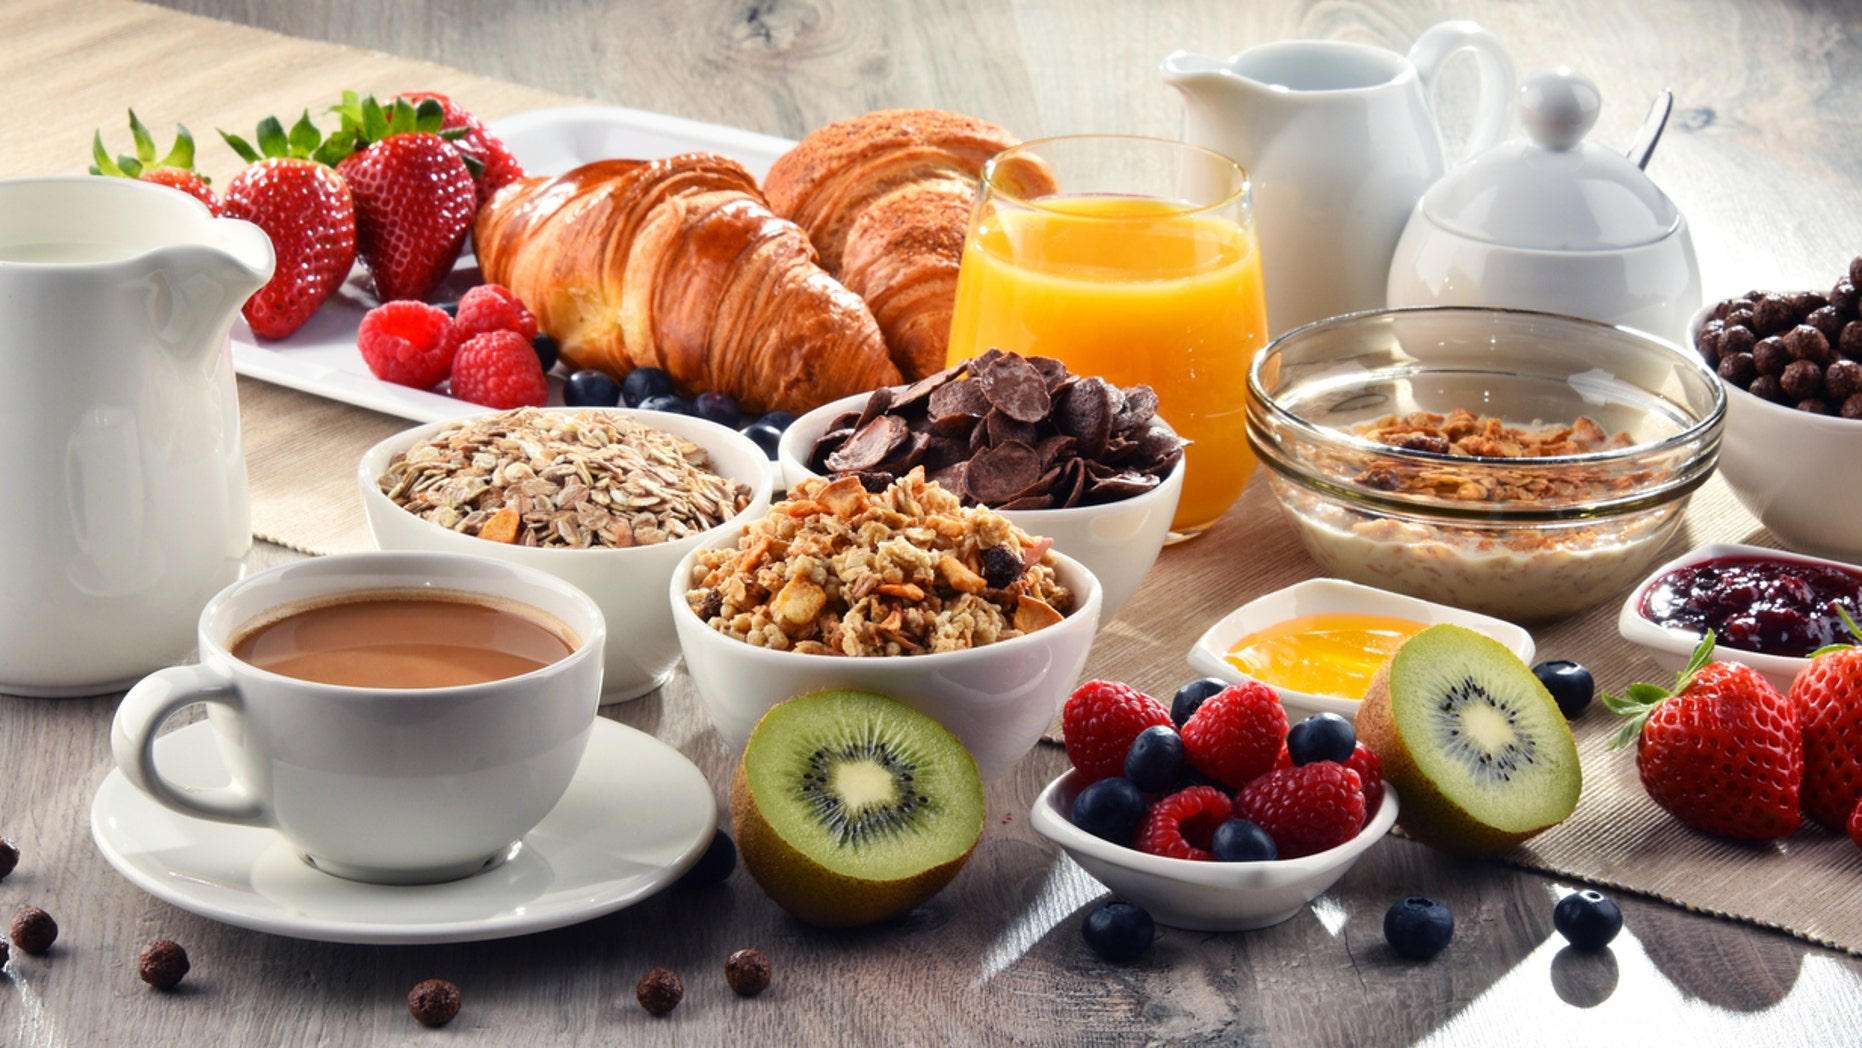 John Stossel: Breakfast Isn't The Most Important Meal Of